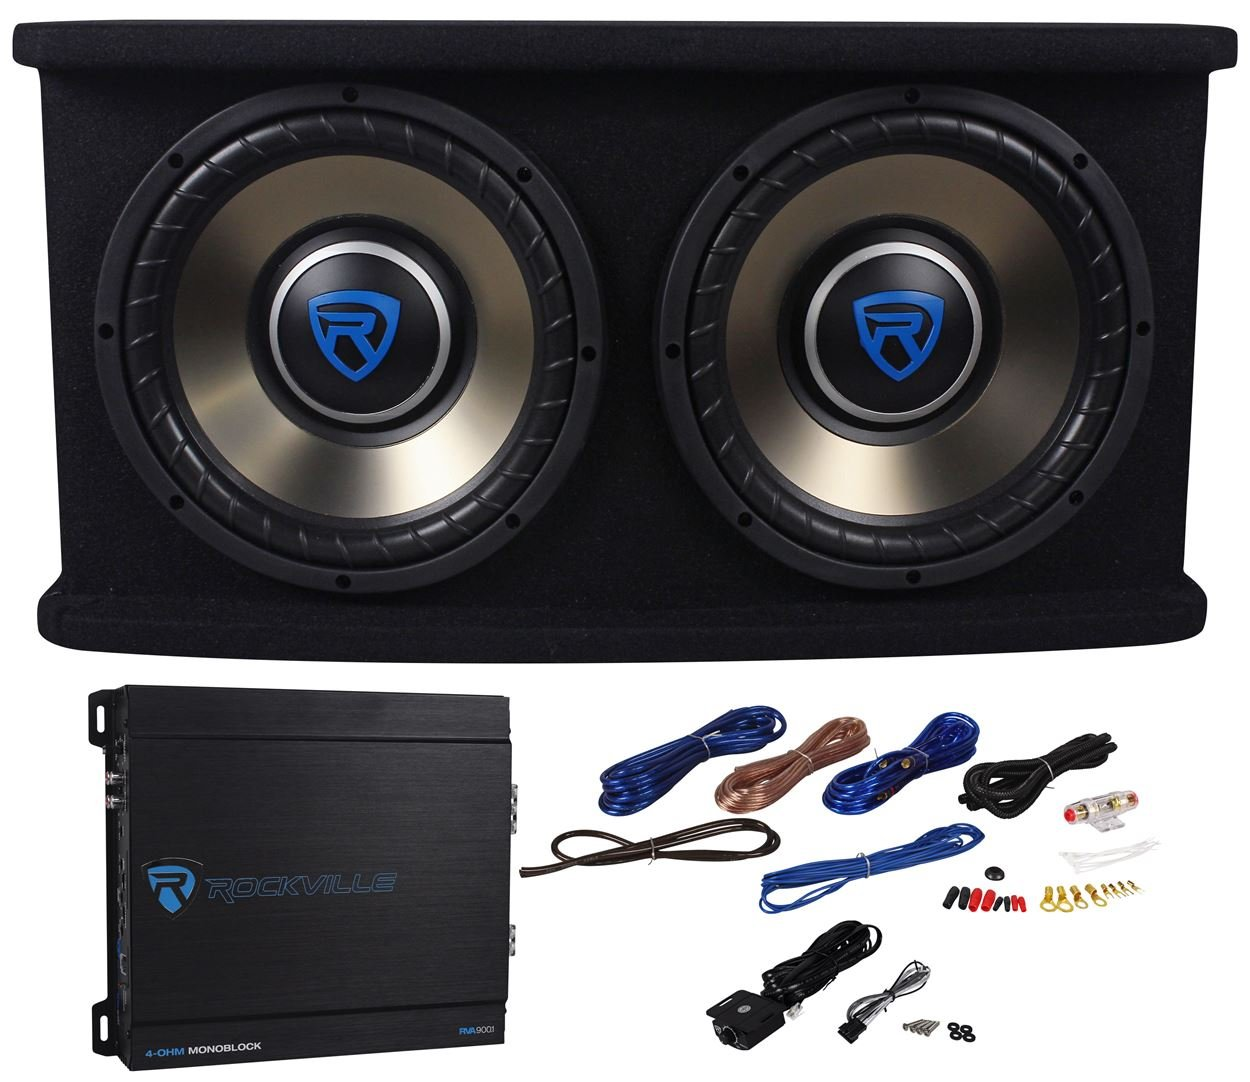 Cheap Car Subwoofer Package Find Deals On Ampkit4 4 Gauge Contaq Amplifier Wiring Kit Lanzar Installation Parts Get Quotations Rockville Rvspl102 Dual 10 1500w Sub Box Amp